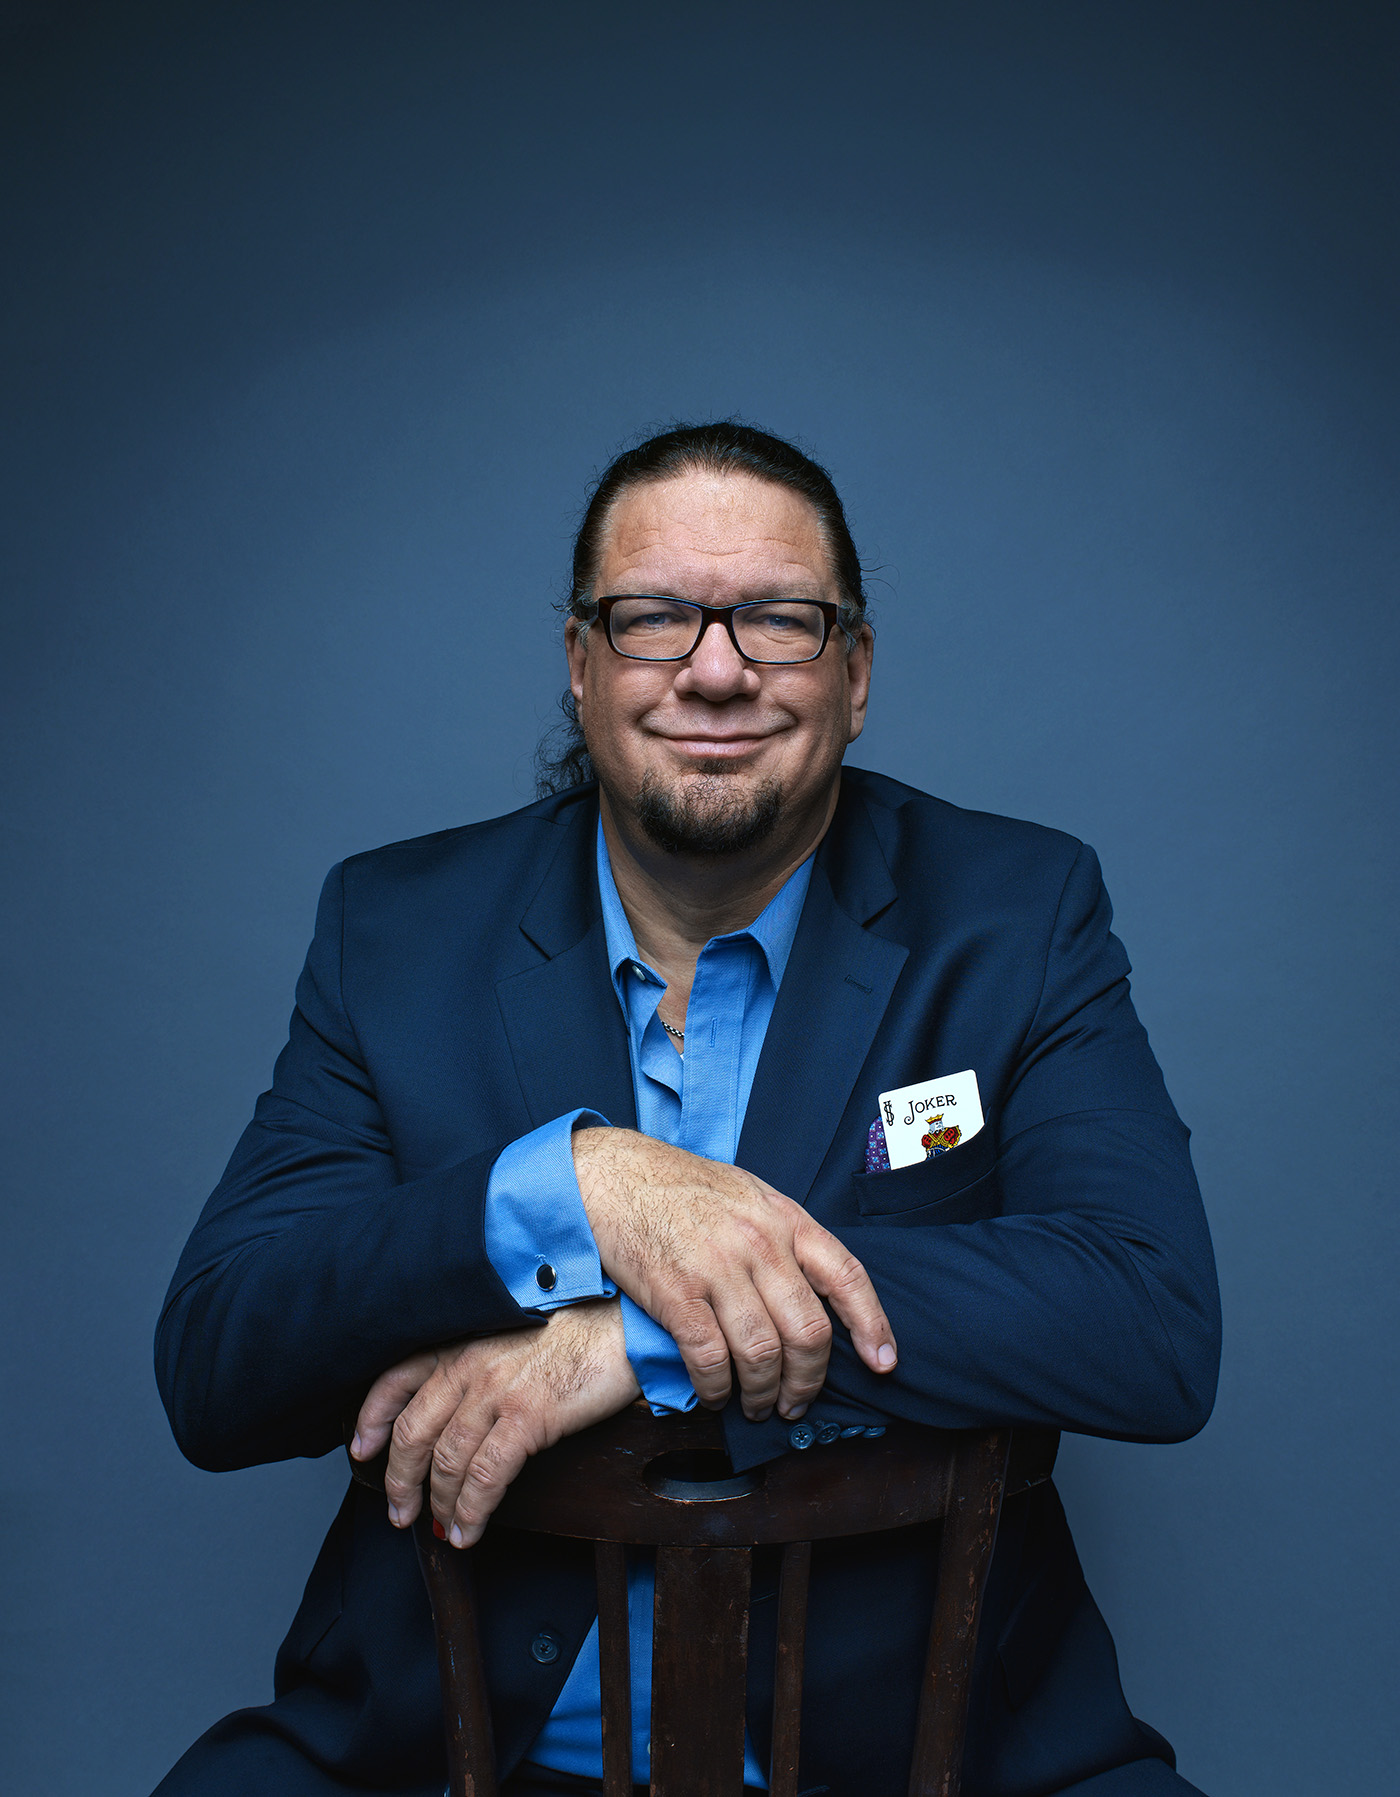 Penn Fraser Jillette (born March 5, 1955) is an American illusionist, comedian, musician, actor, and best-selling author known for his work with fellow magician Teller in the team Penn & Teller. He is also known for his advocacy of atheism, scientific skepticism, libertarianism and free-market capitalism.